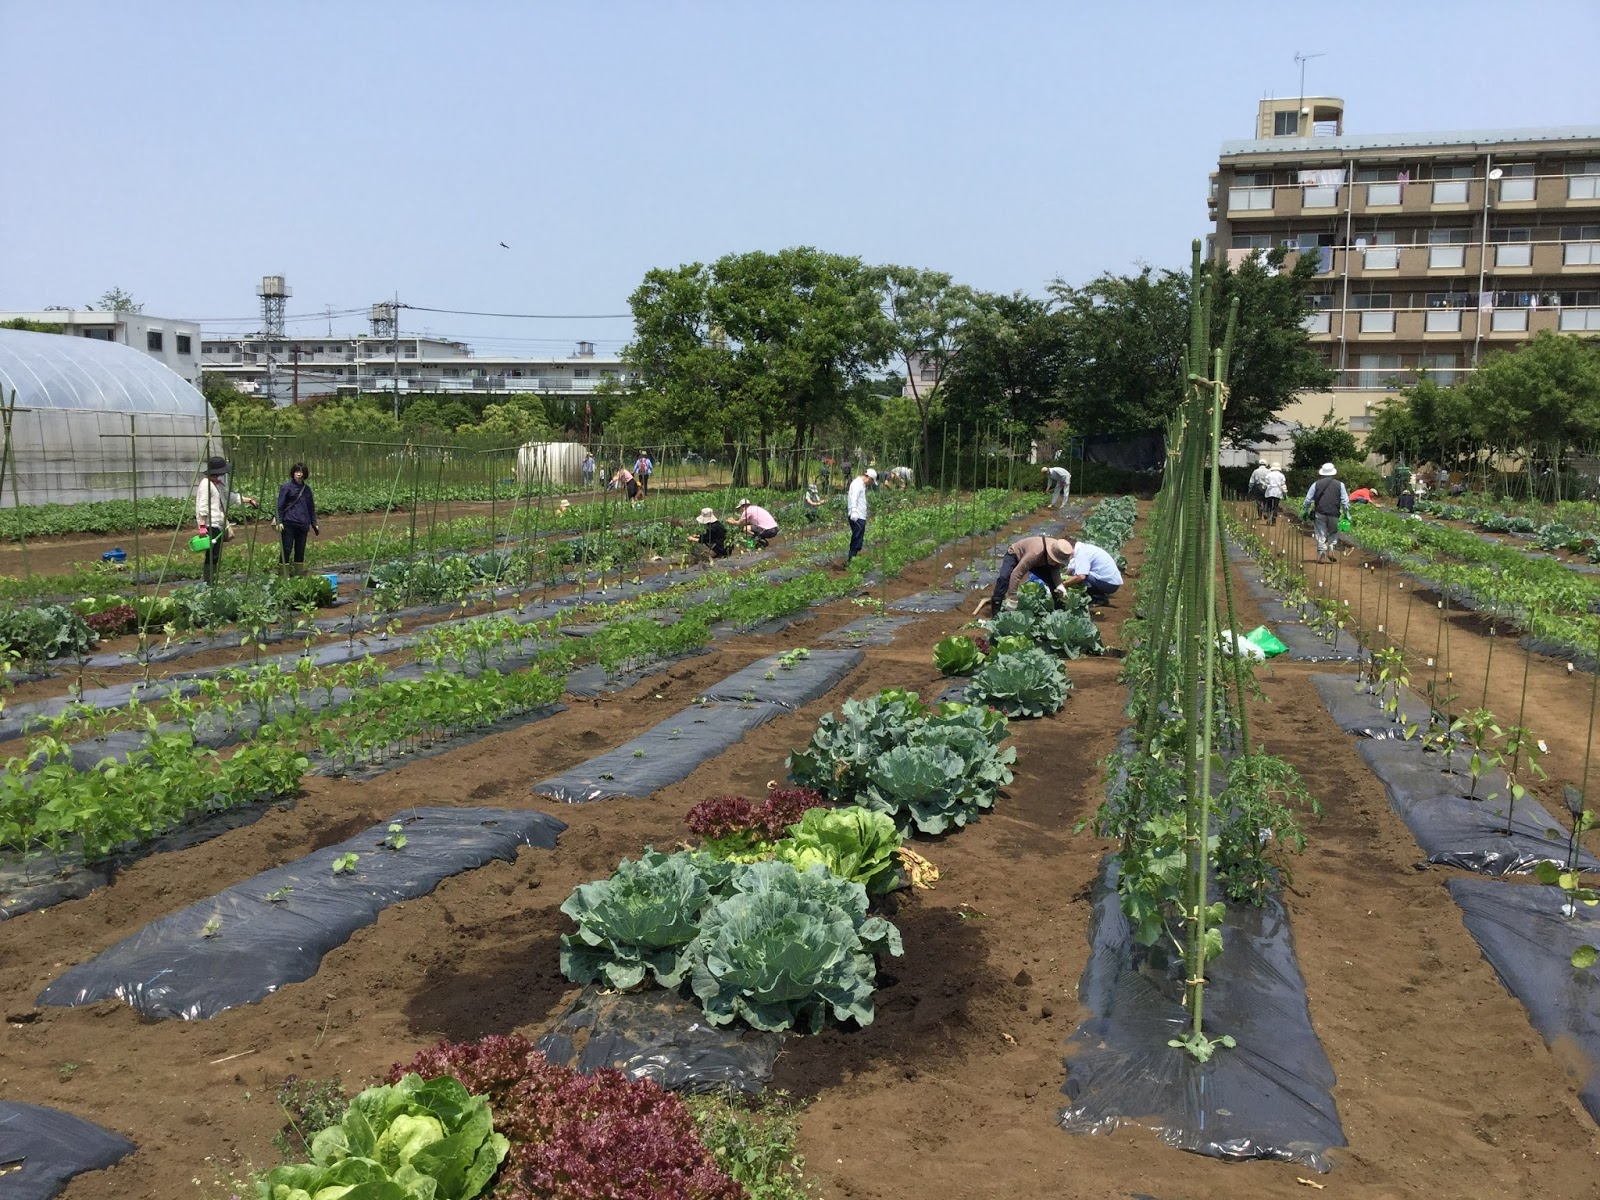 Japan Farmers Markets Experience Farms And Community Gardens How To Get Gardening In Japan